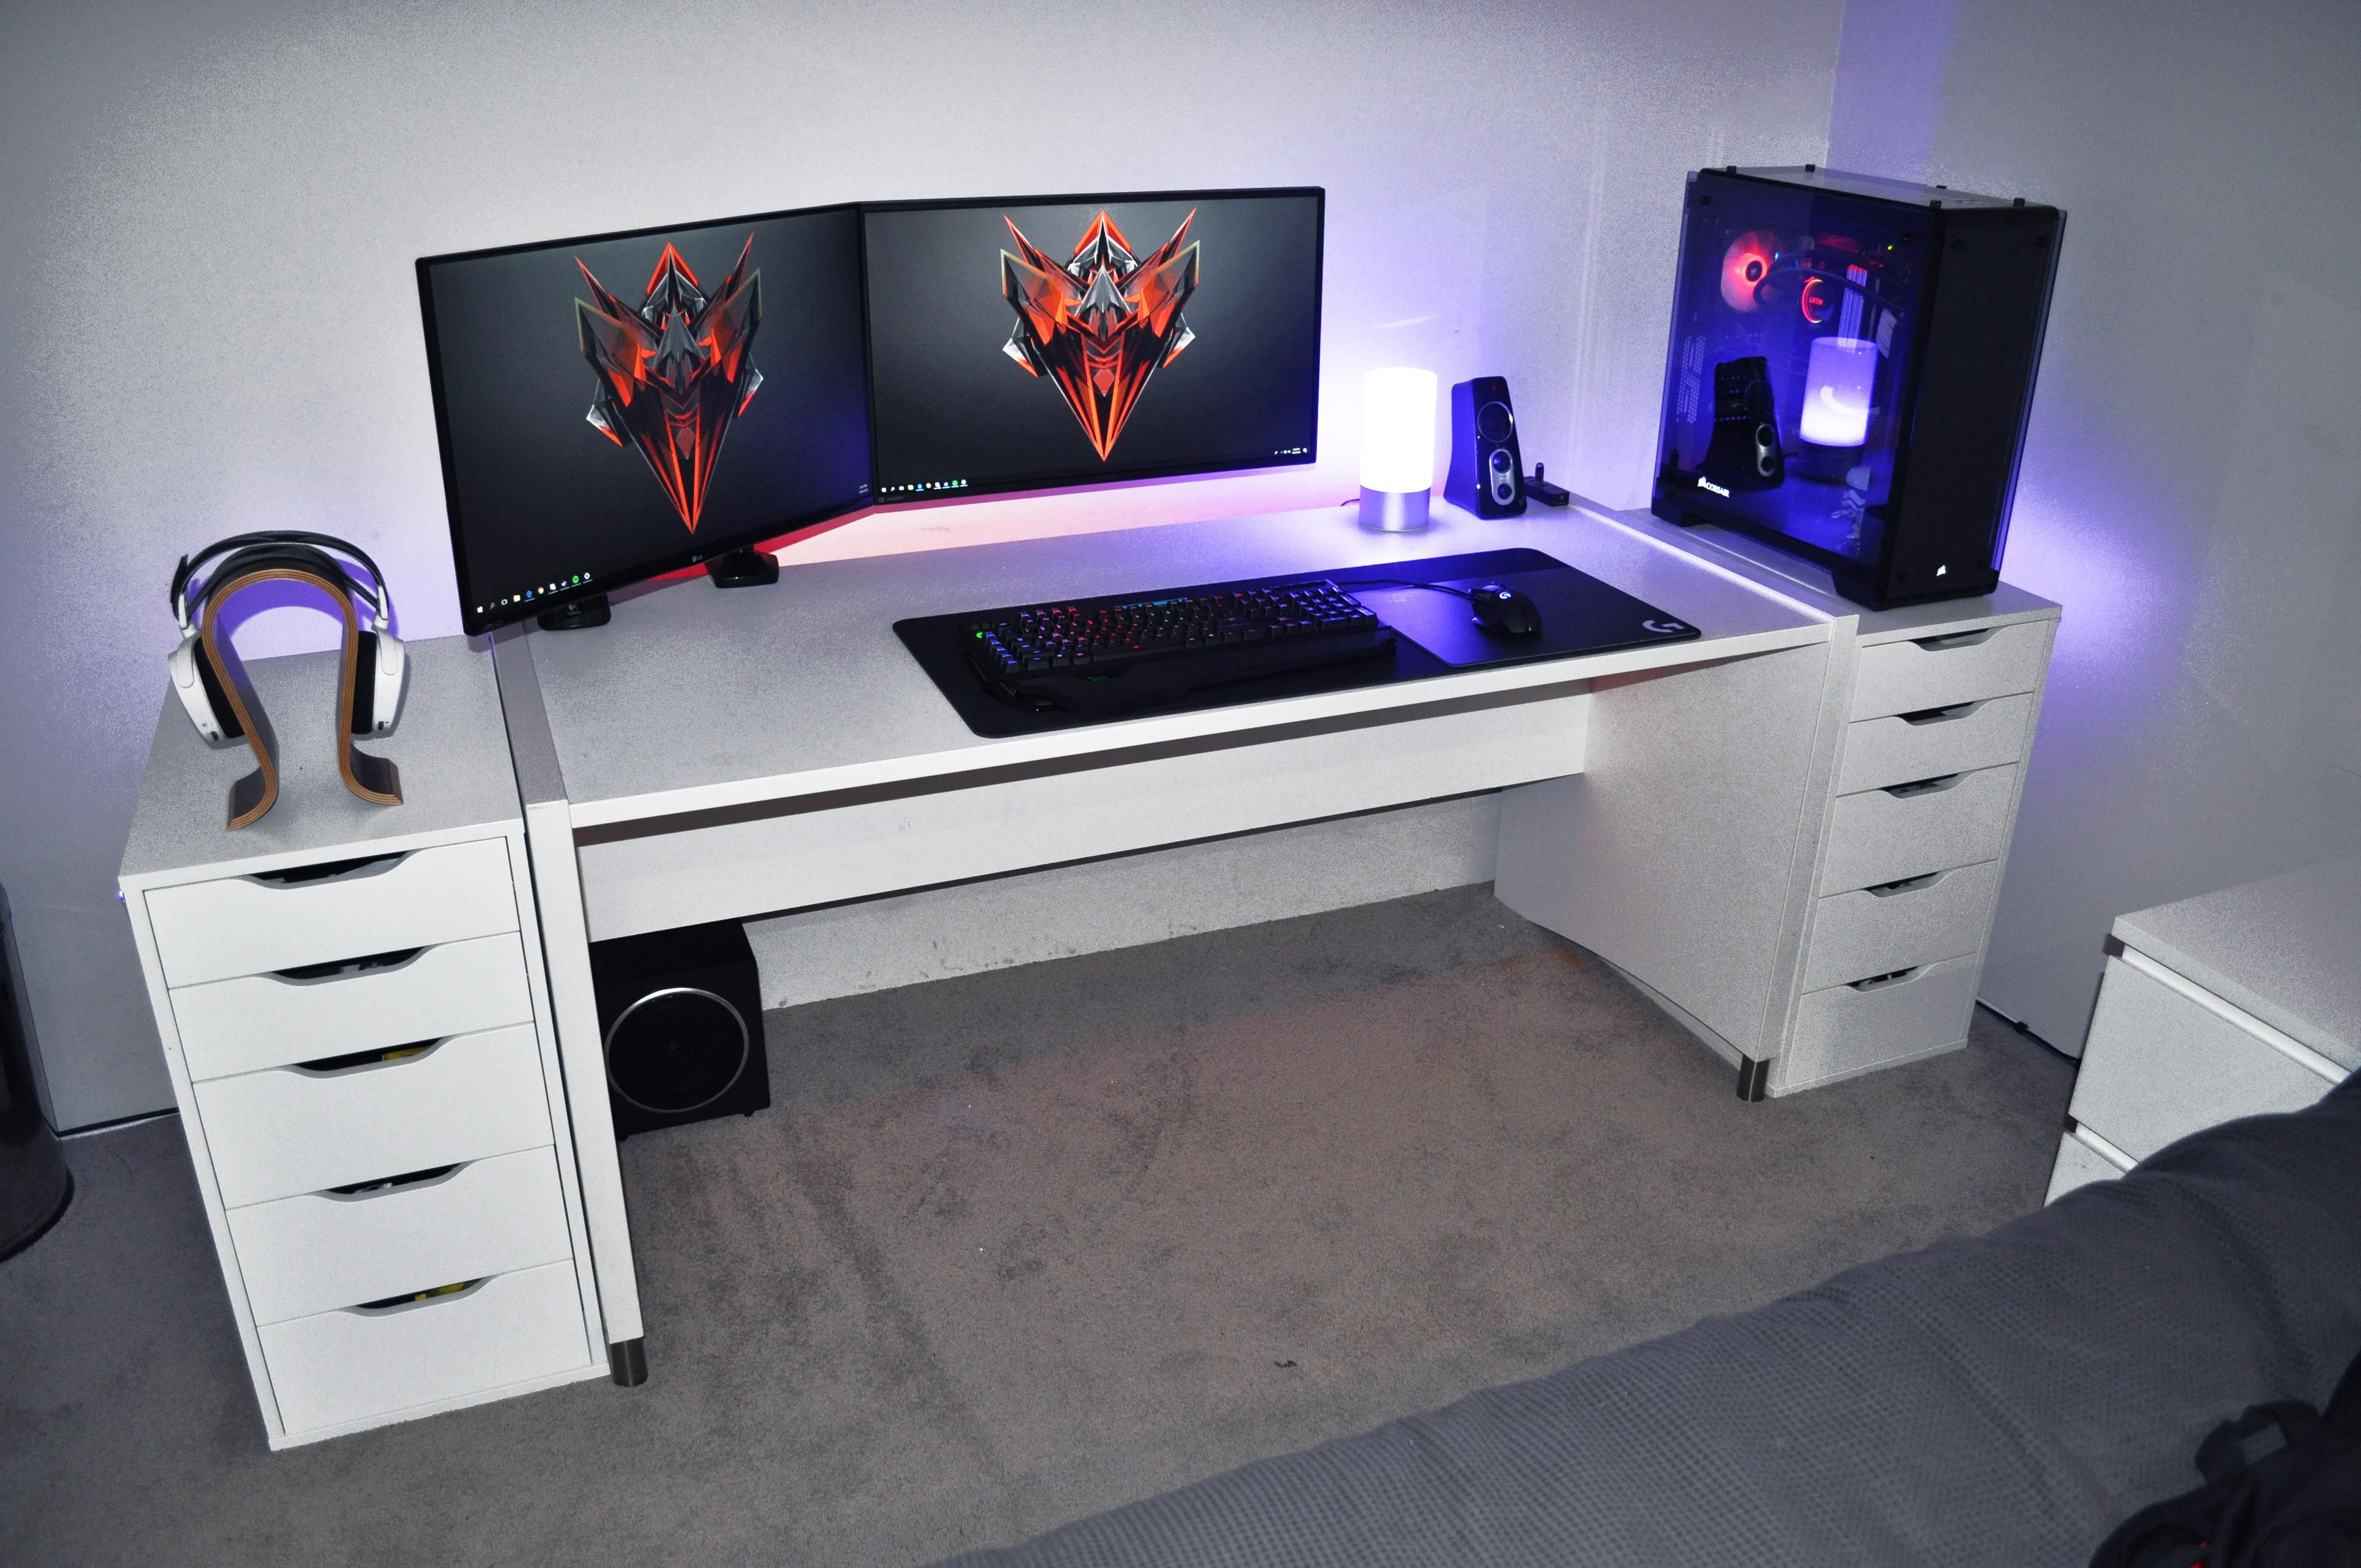 Removed The Desks Two Middle Drawers And Added More Rgb Home Office Setup Gaming Desk Setup Desk Layout